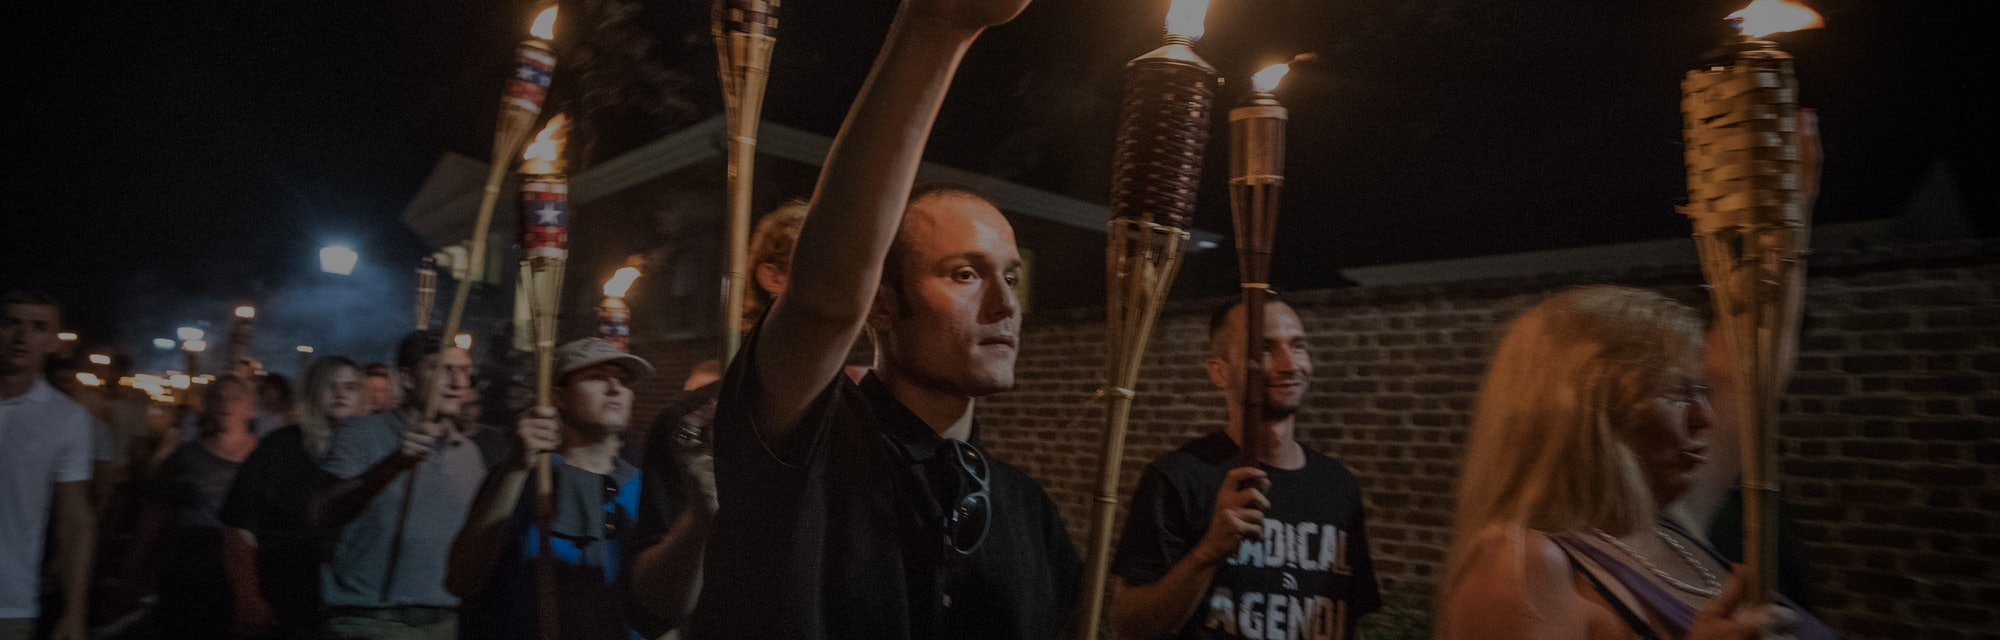 CHARLOTTESVILLE,VA-AUG11:Chanting White lives matter! You will not replace us! and Jews will not replace us! several hundred white nationalists and white supremacists carrying torches marched in a parade through the University of Virginia campus last night. Beginning a little after 9:30 p.m., the march lasted 15 to 20 minutes before ending in skirmishing when the marchers were met by a small group of counterprotesters at the base of a statue of Thomas Jefferson, the universitys founder. (Photo by Evelyn Hockstein/For The Washington Post via Getty Images)